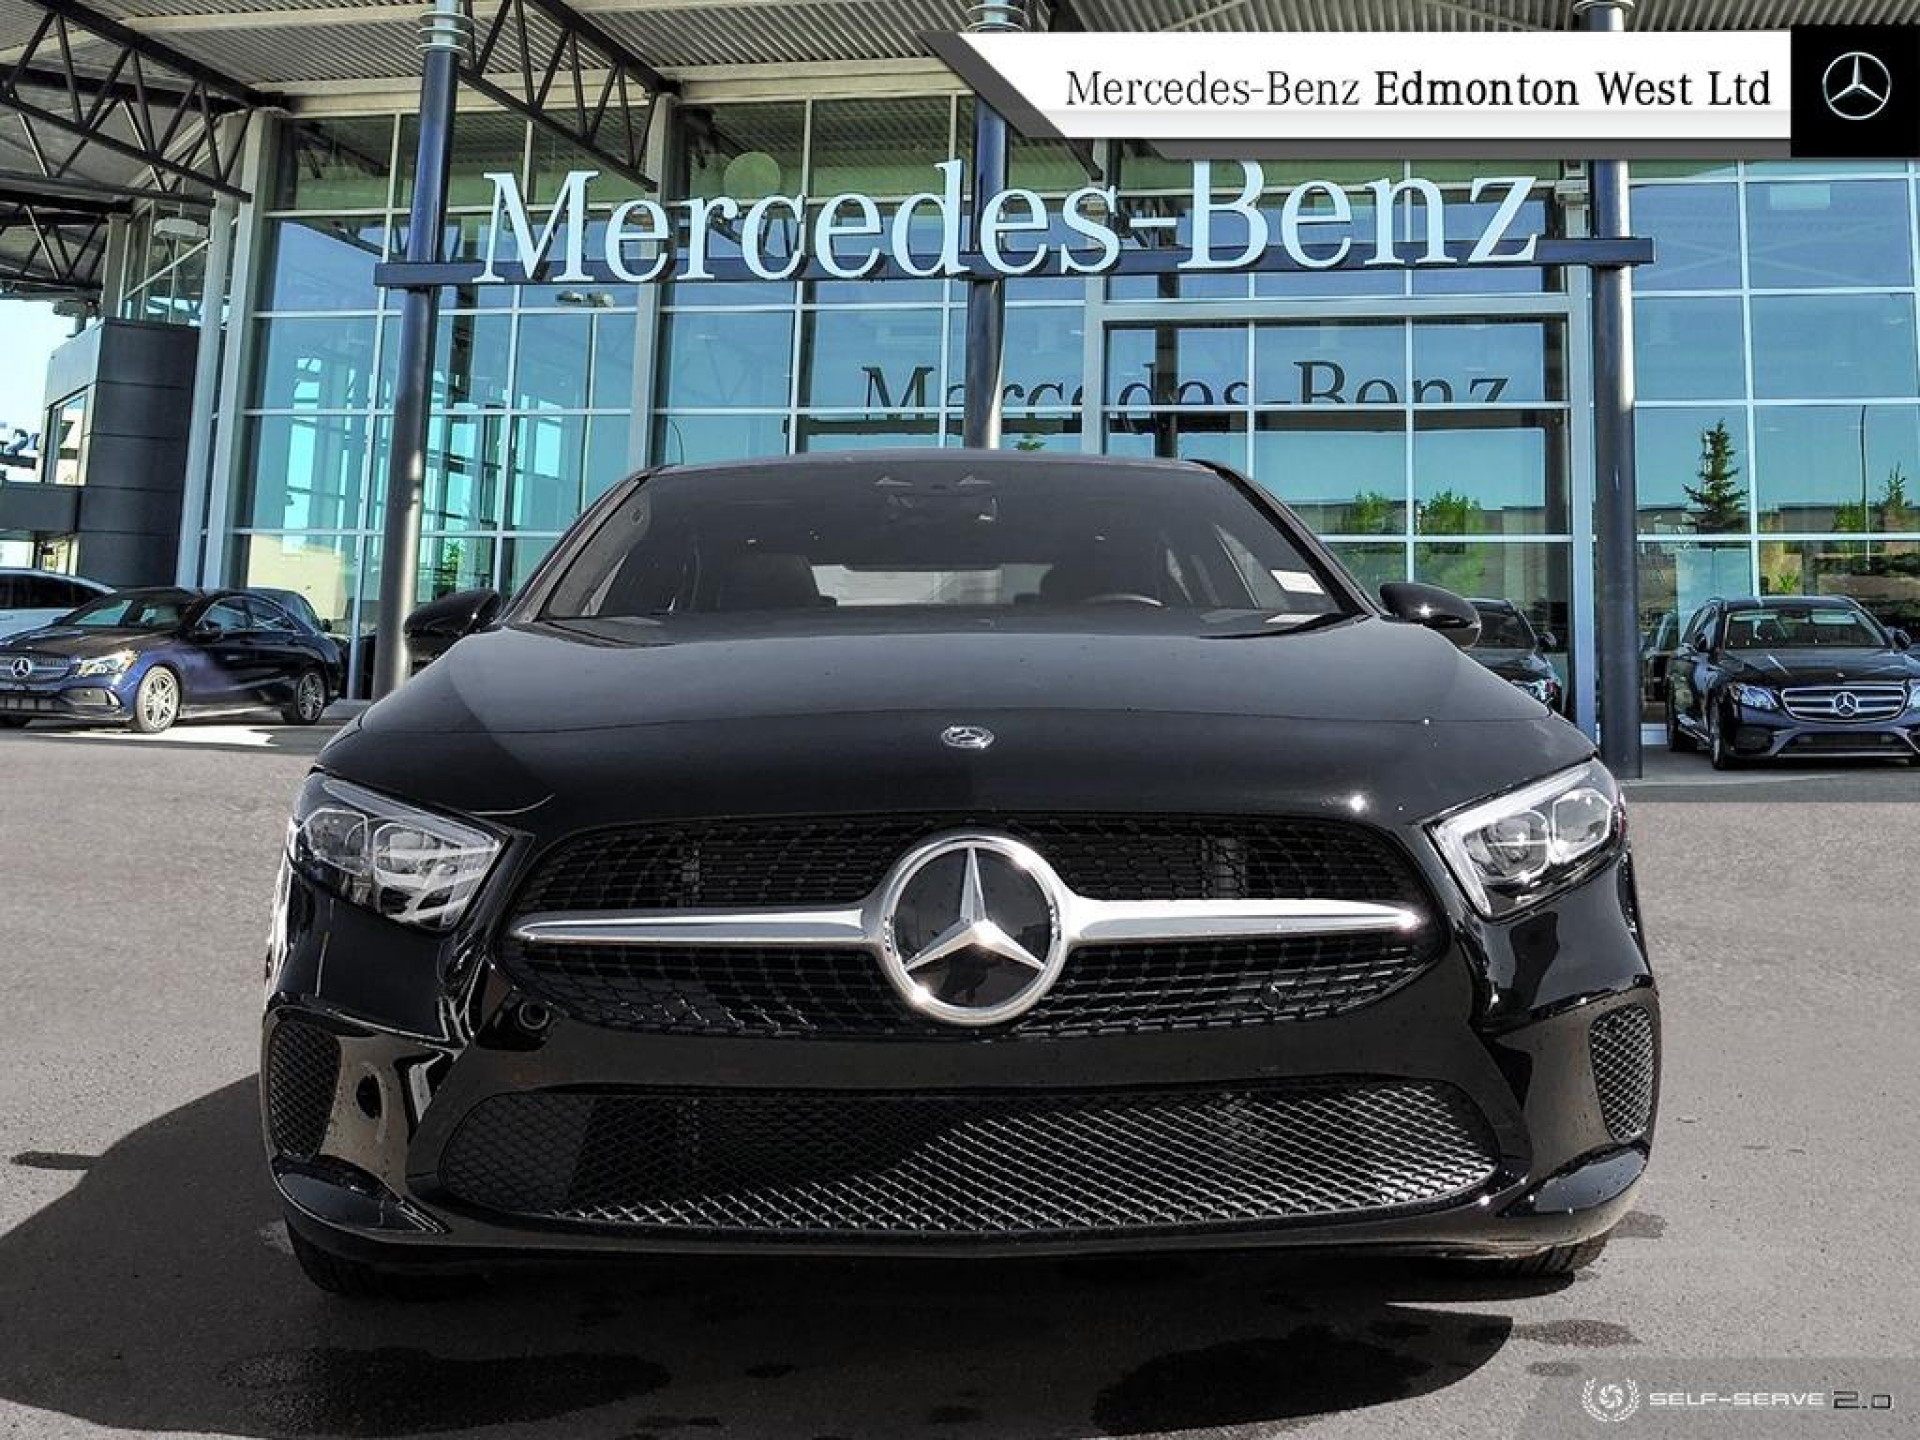 New 2020 Mercedes Benz A Class 220 4MATIC Sedan